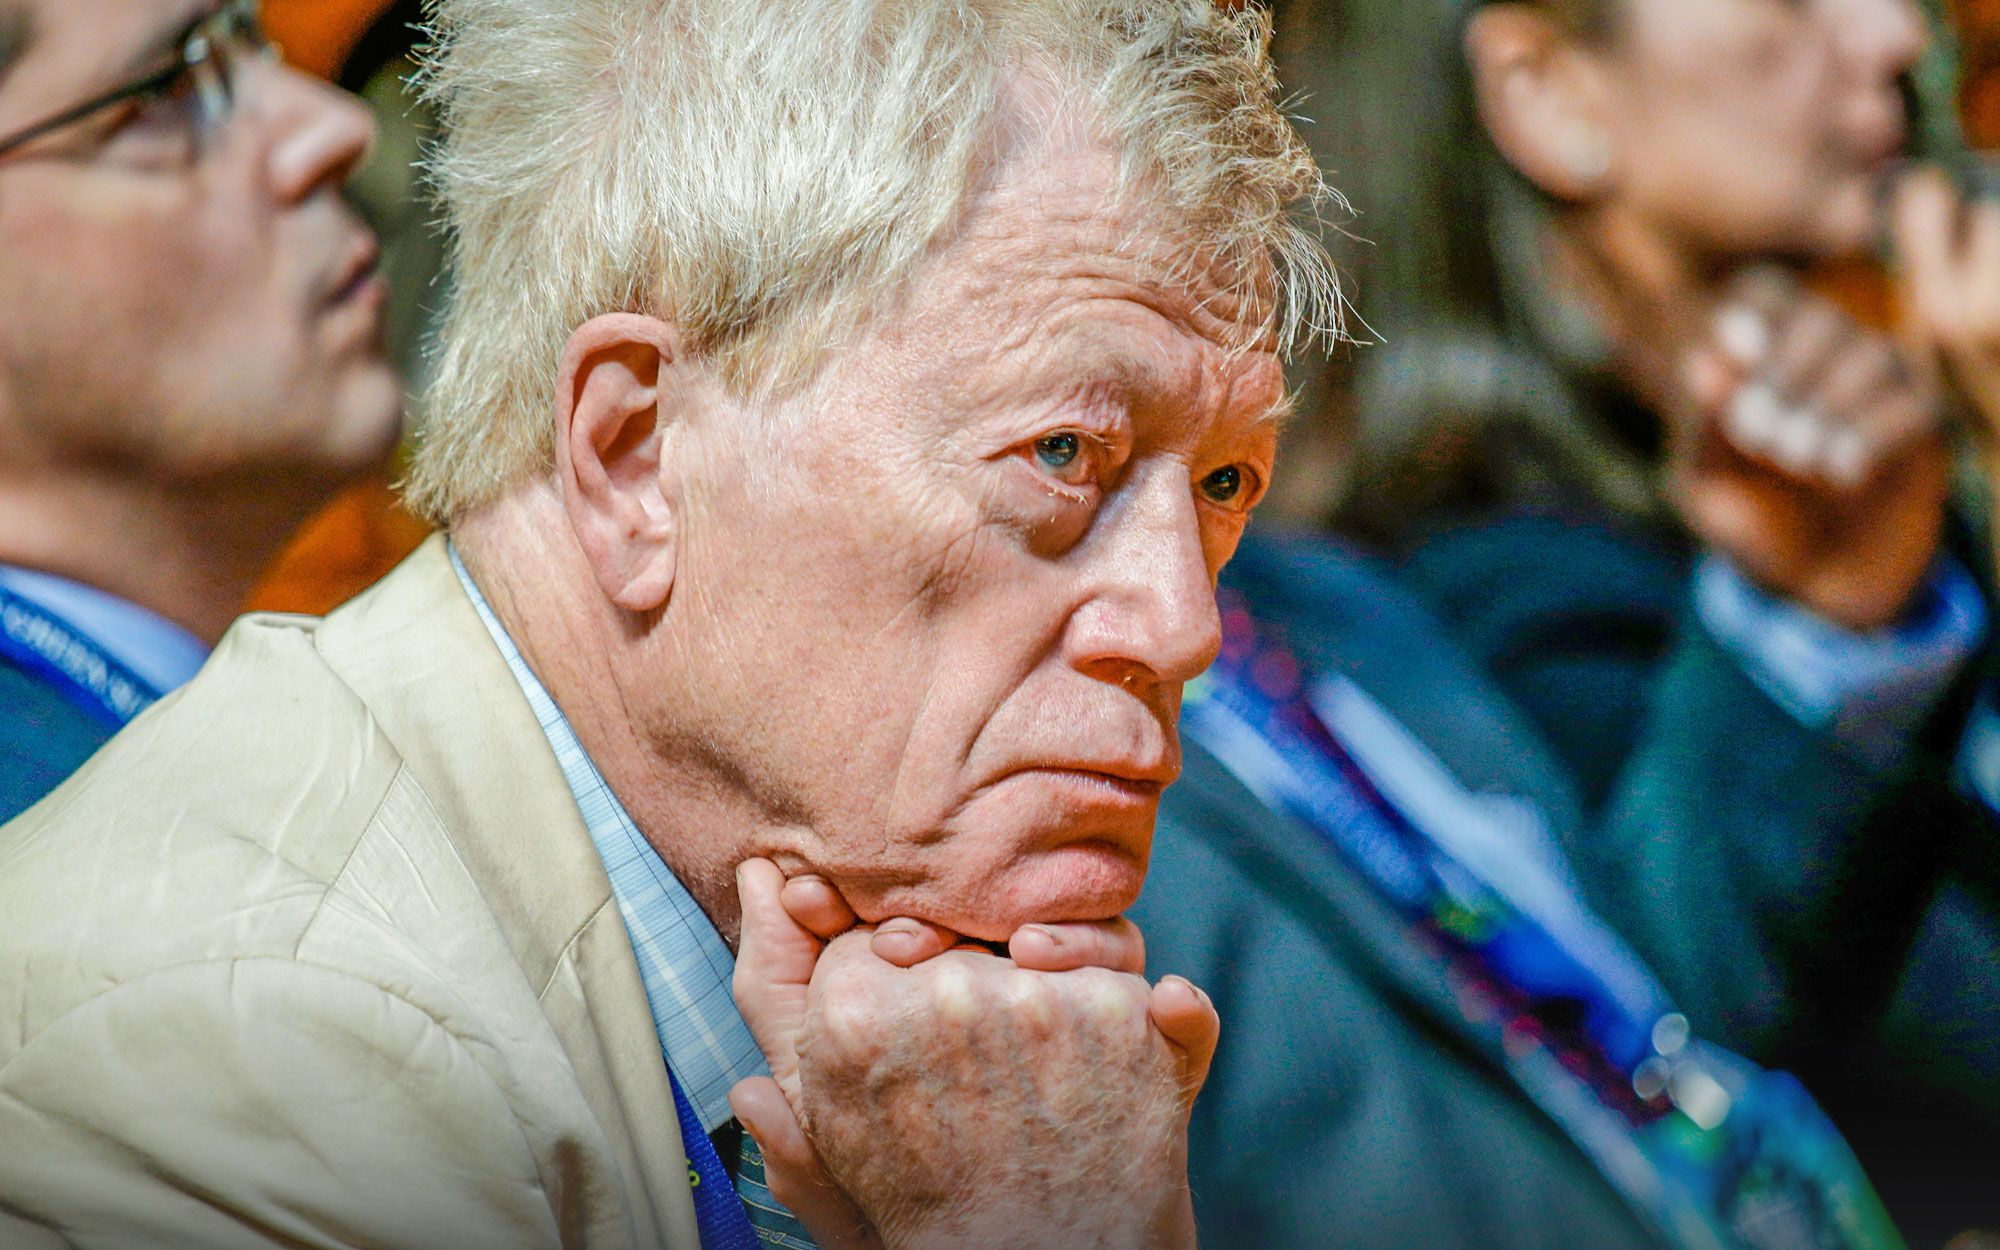 Amid 'Hate Storm', Famed Conservative Philosopher and Author Sir Roger Scruton, Dies at 75